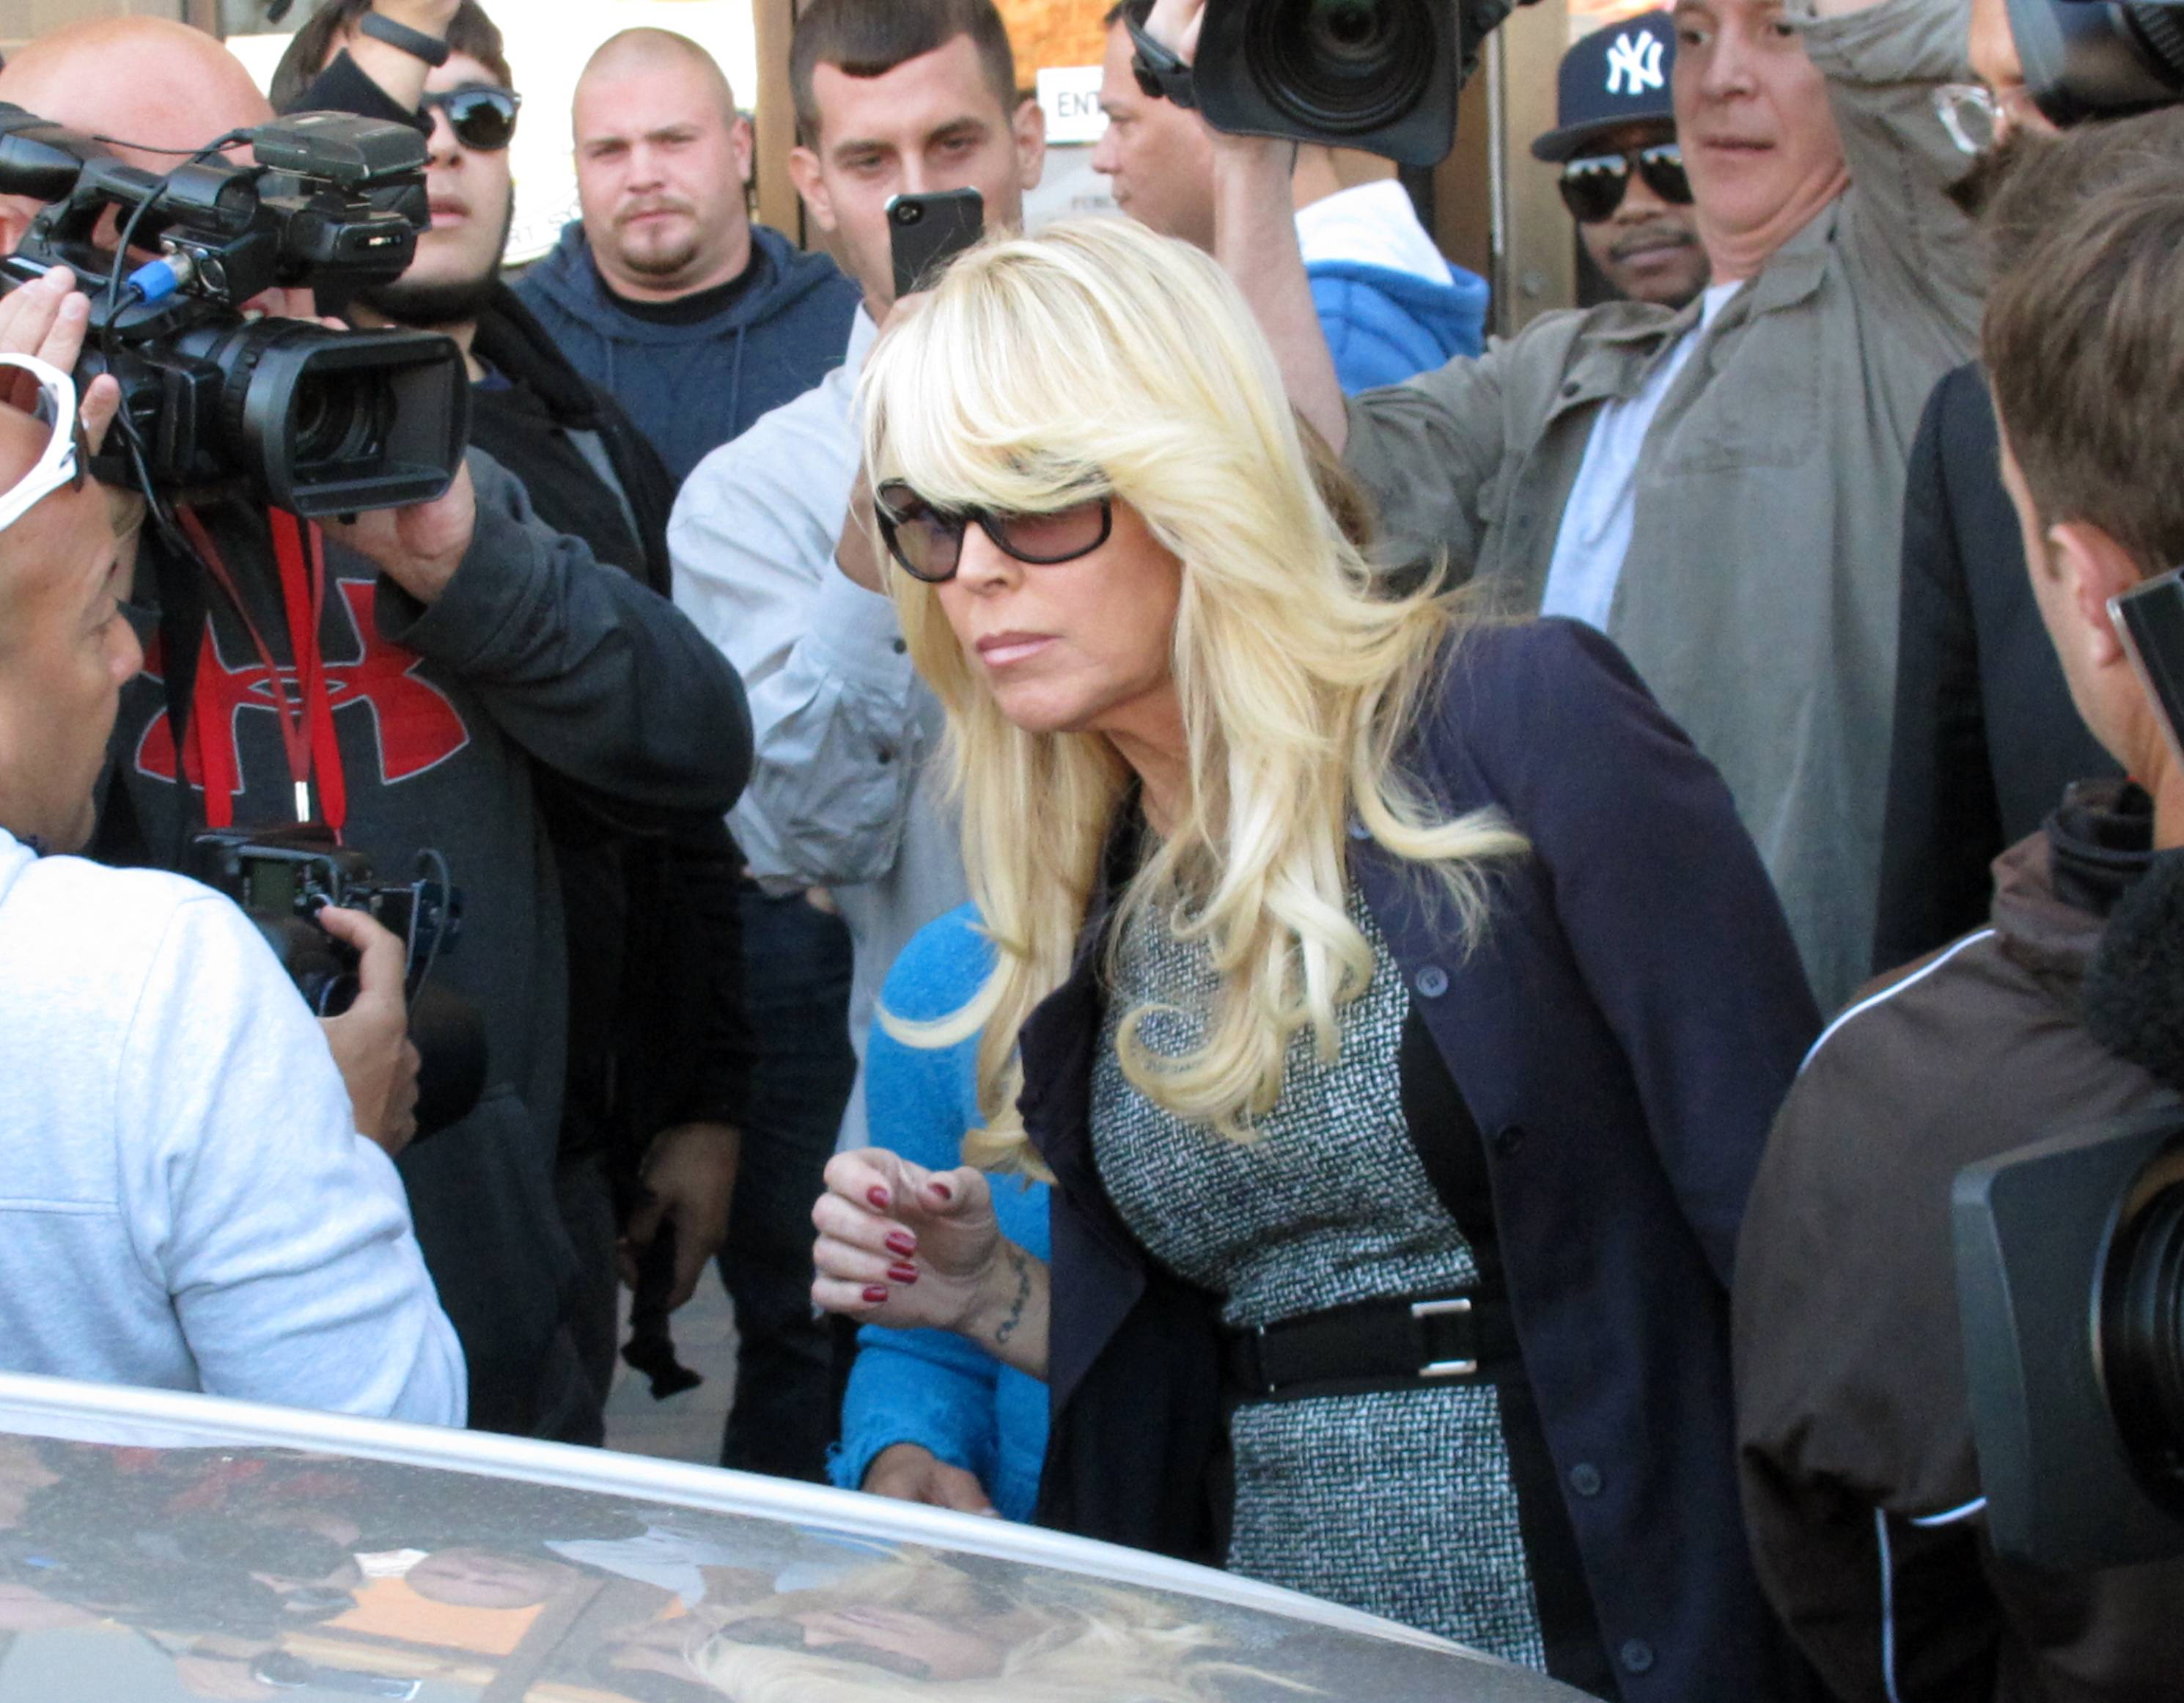 Dina Lohan won't go to jail for speeding and driving drunk on a Long Island highway. A judge Tuesday ordered her to pay over $3,000 in fines and fees. She'll also perform 100 hours of community service and participate in a drunken driving program.